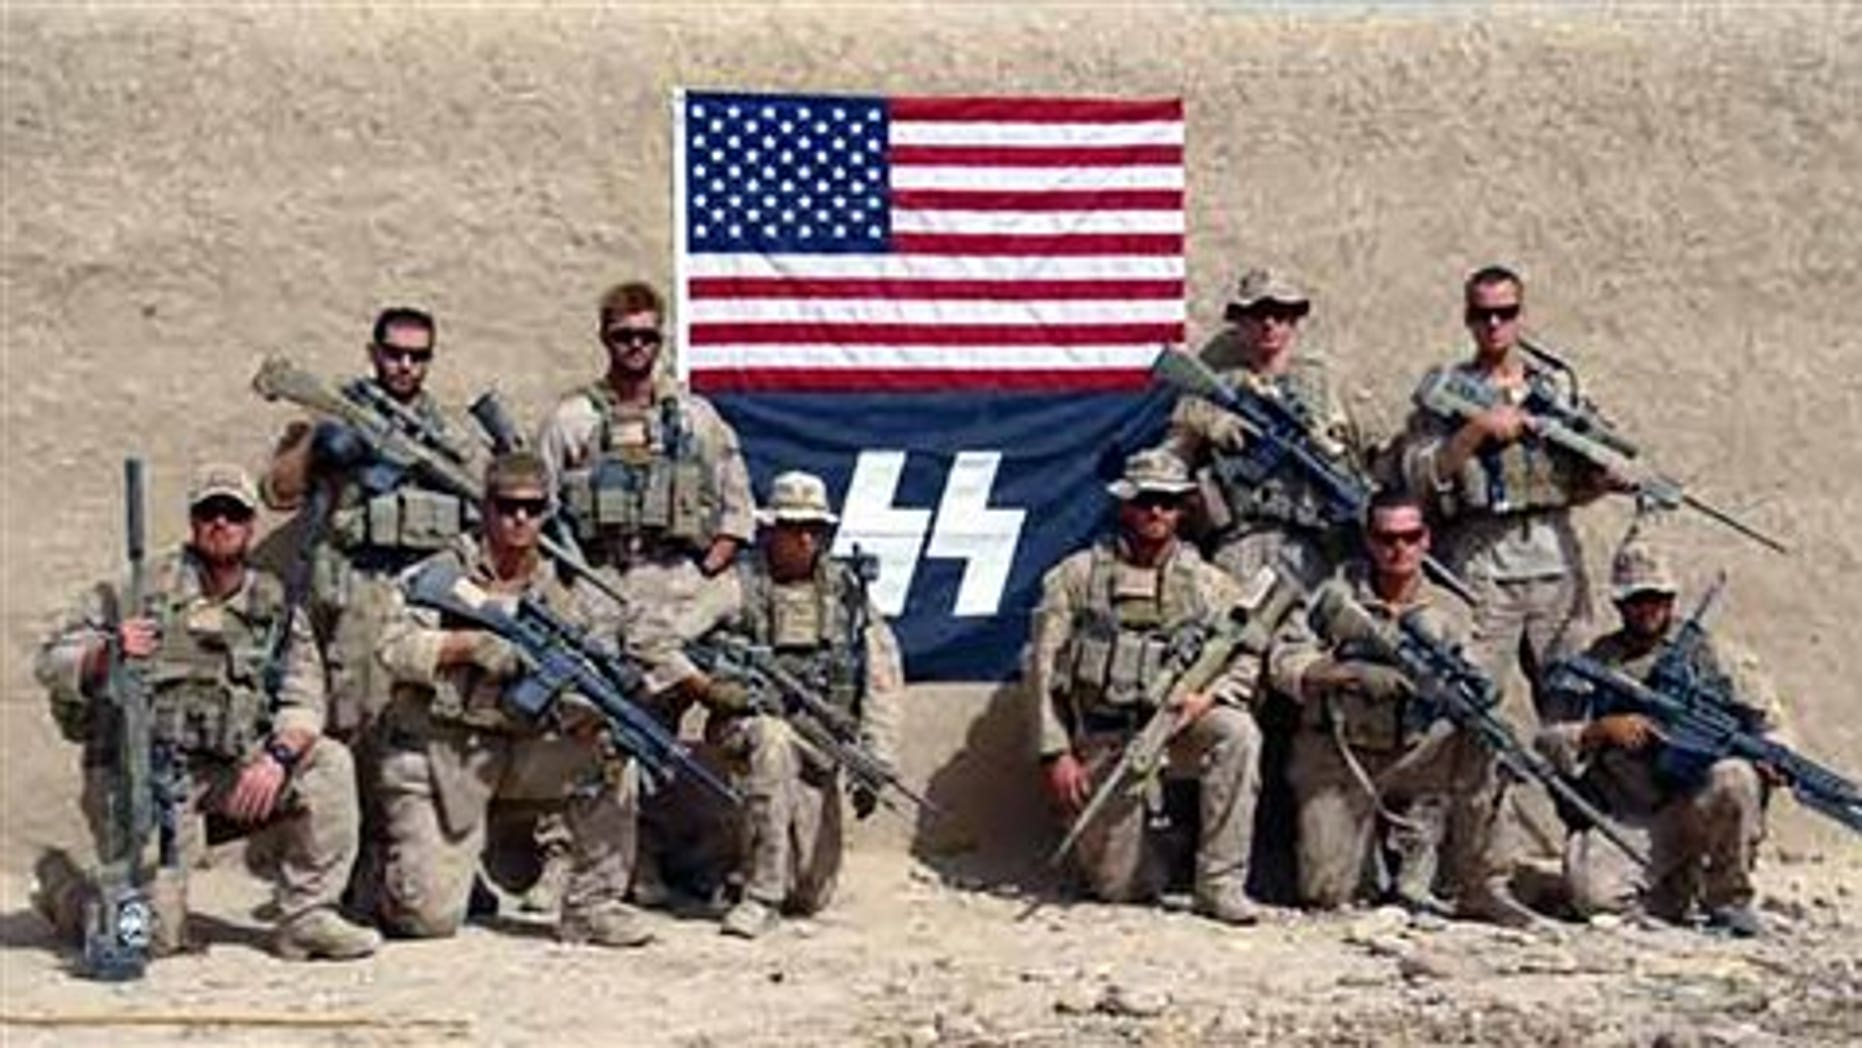 This Sept. 2010 photo posted recently on the Titiusville, Florida-based arms manufacturer Knight's Armament's Internet blog, shows members of Charlie Company, 1st Reconnaissance Battalion, out of Camp Pendleton, Calif. in Sangin, Helmand province, Afghanistan.